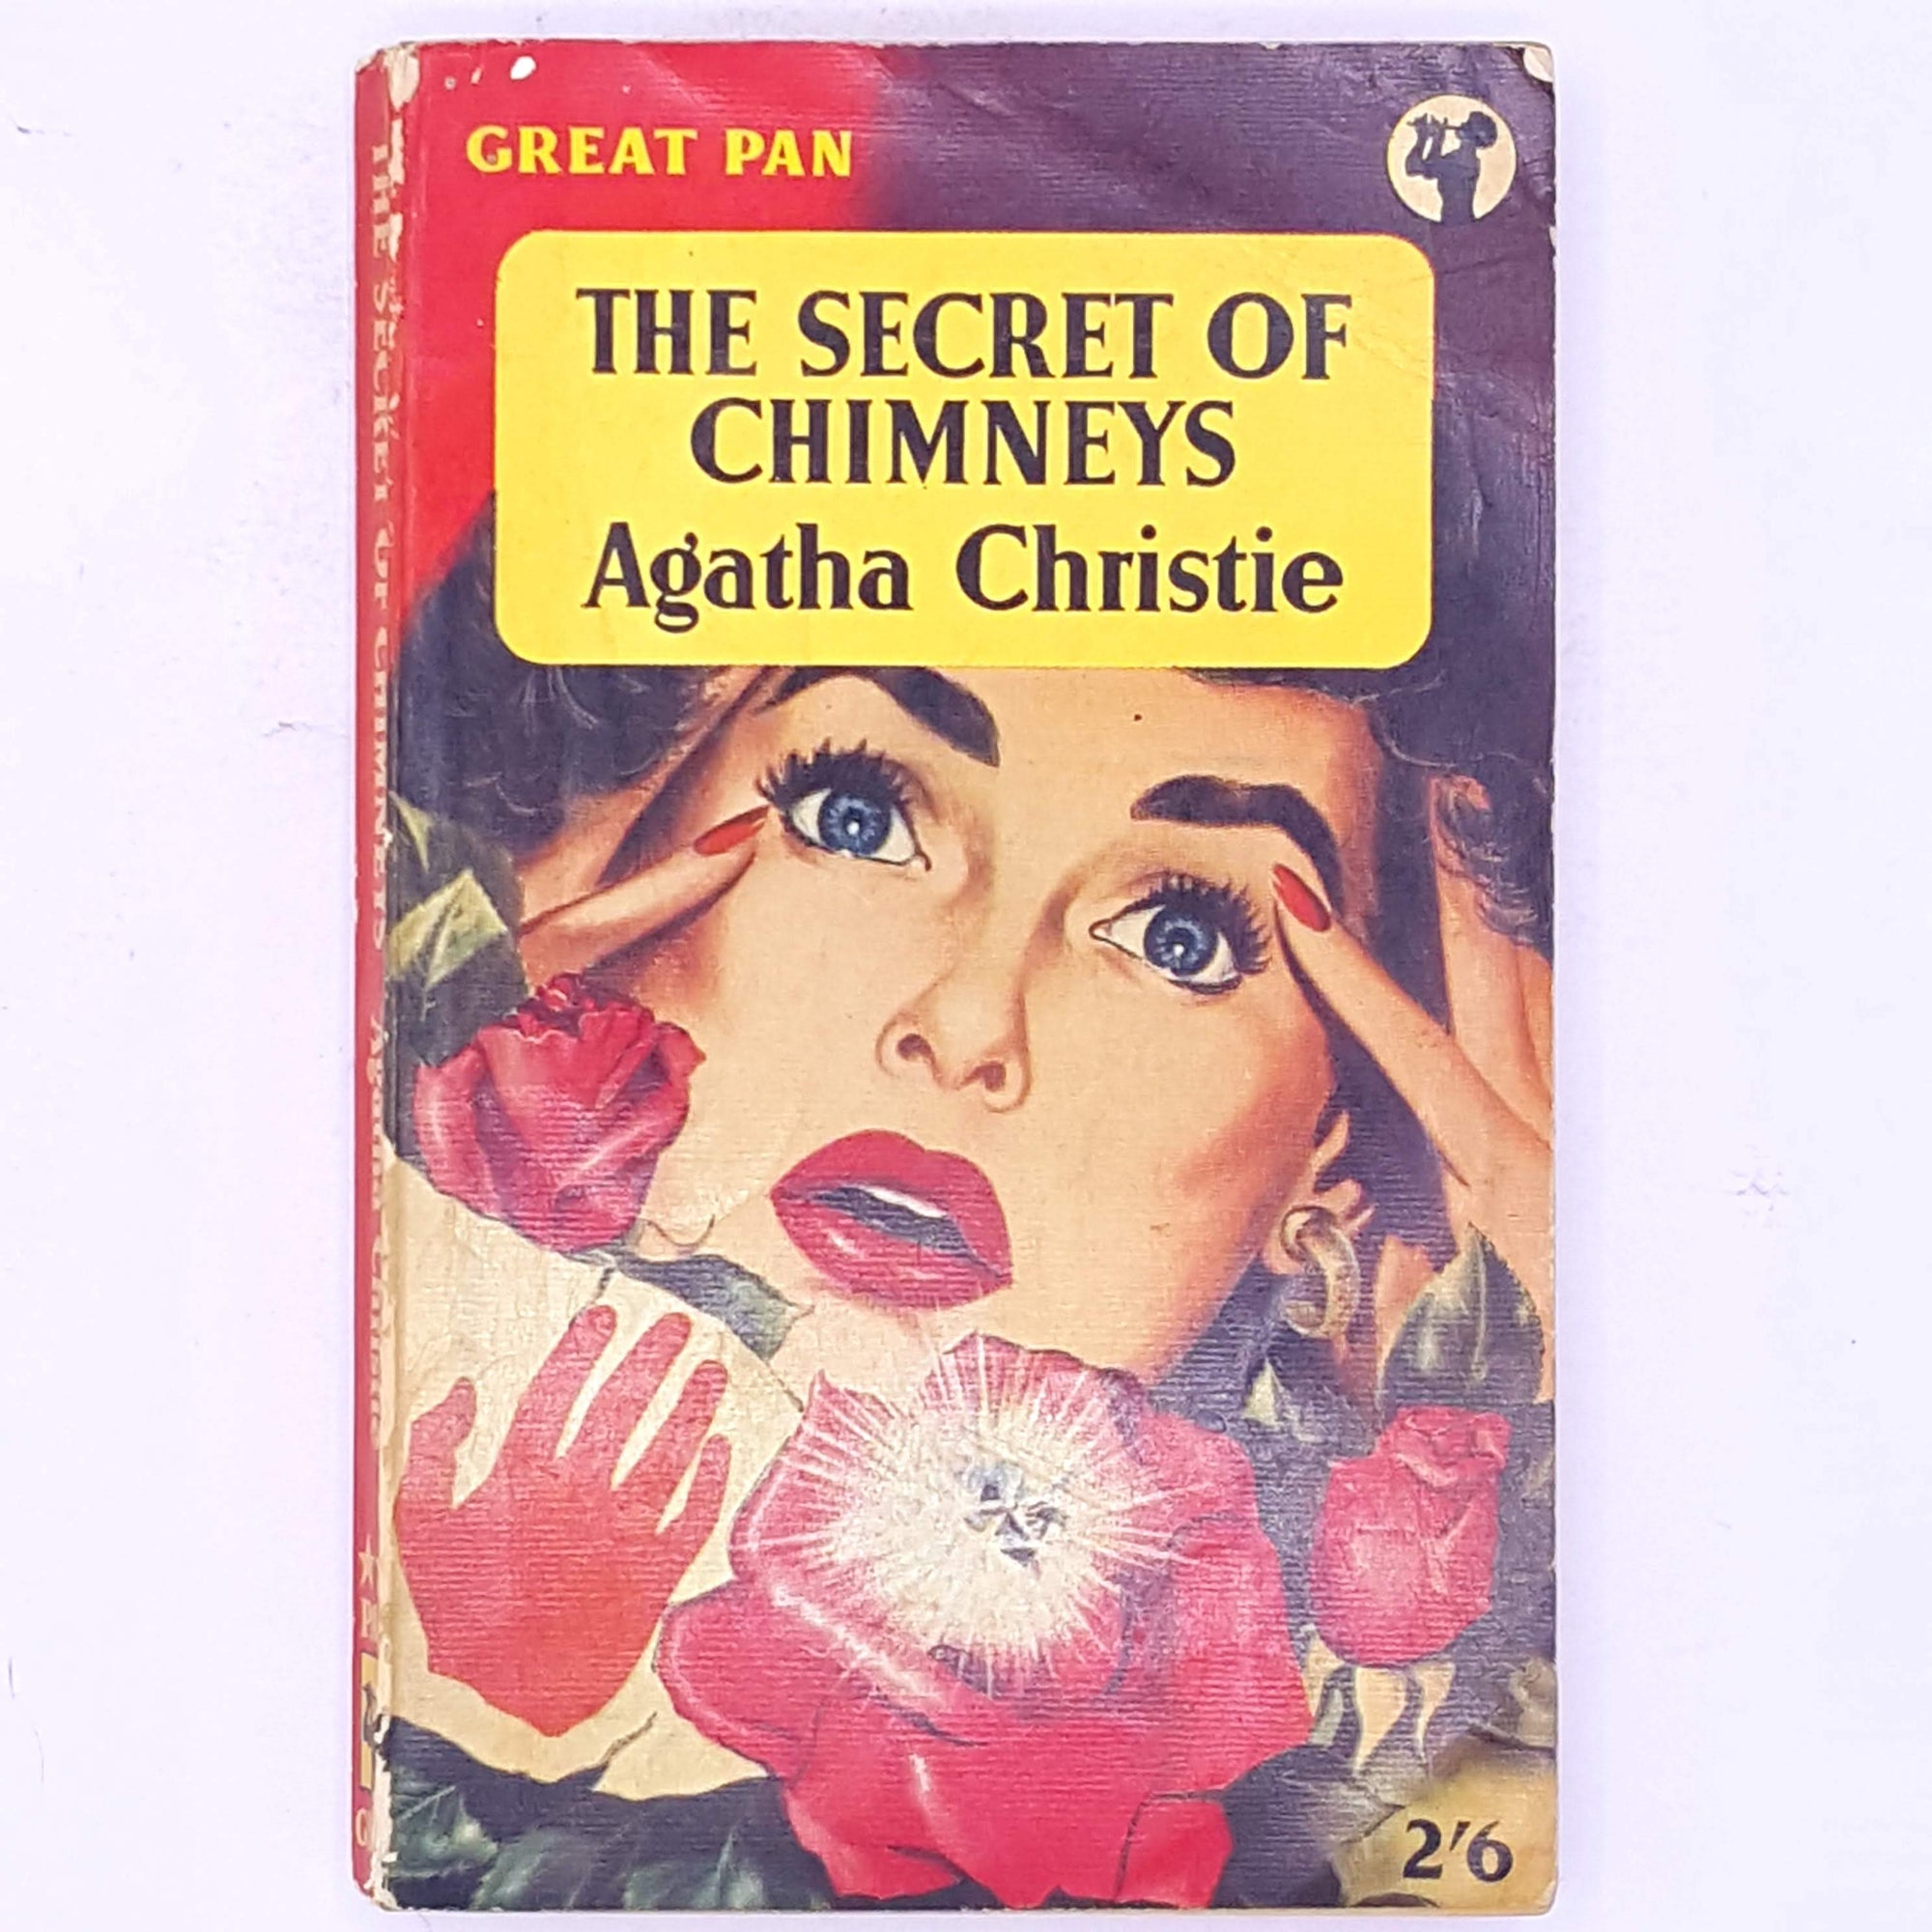 old-country-house-library-thrift-Poirot-the-secret-of-chimney-antique-female-author-fiction-detective-stories-mystery- vintage-books-classic-agatha-christie-detective-crime-patterned-decorative-